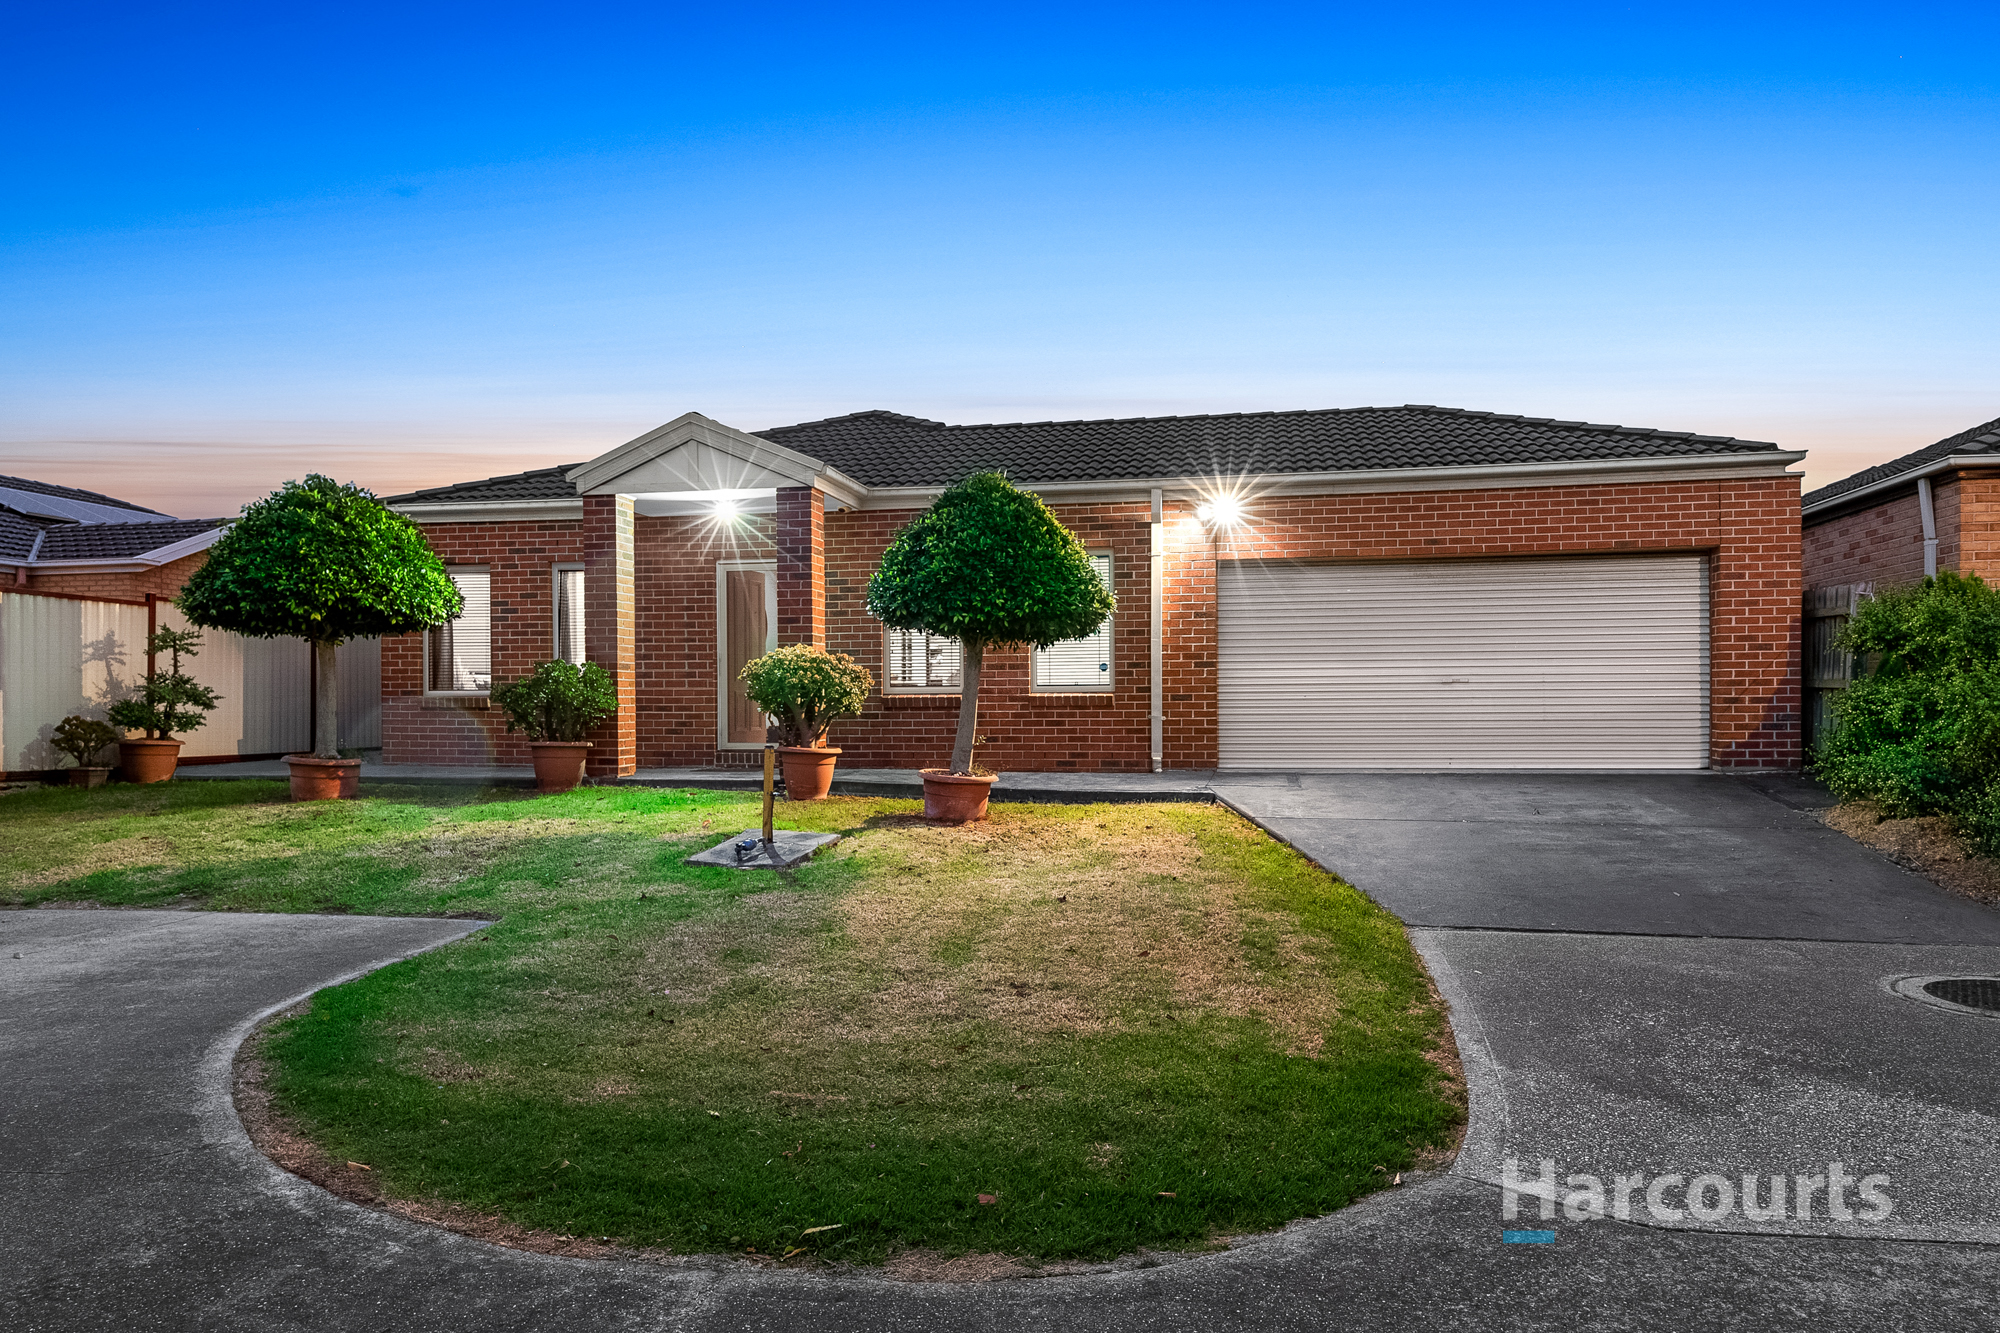 Under Contract - Harcourts